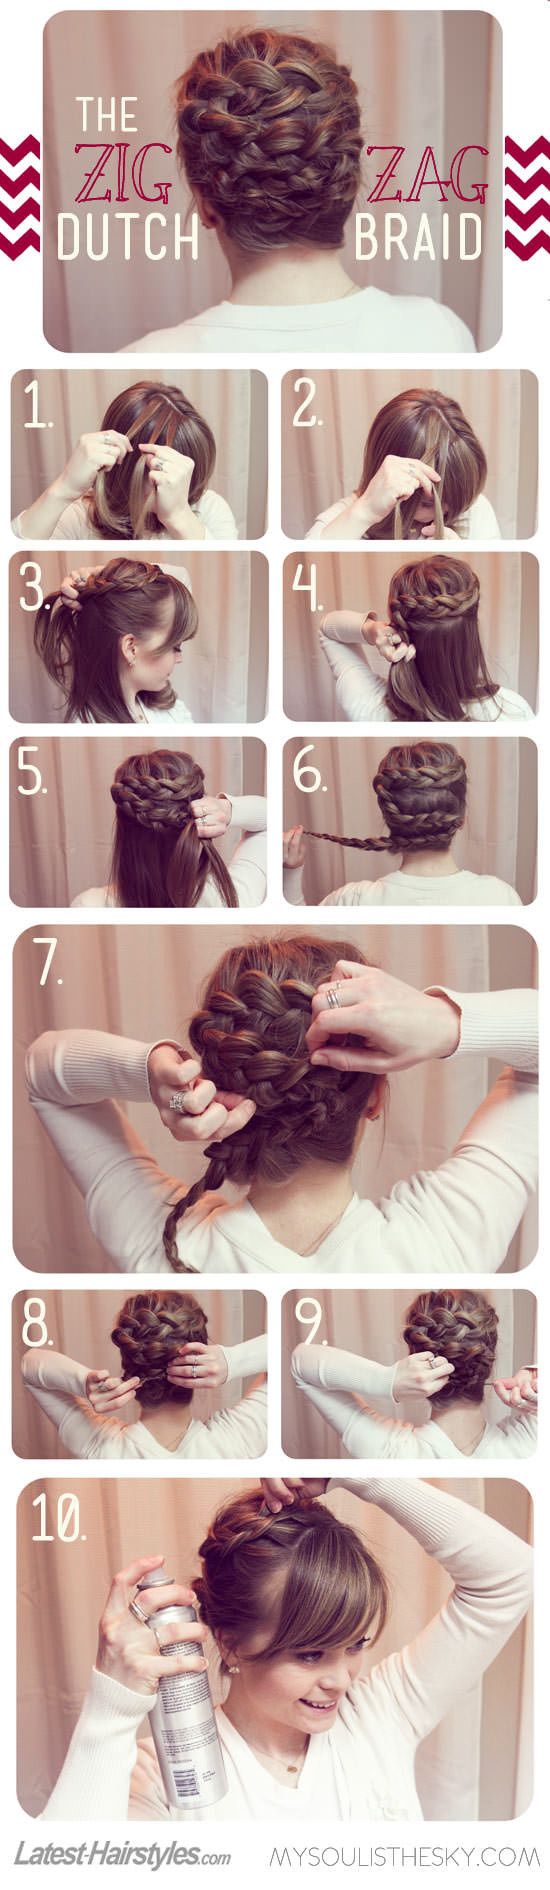 Up Your Braid Game With This Zig-Zag 'Do